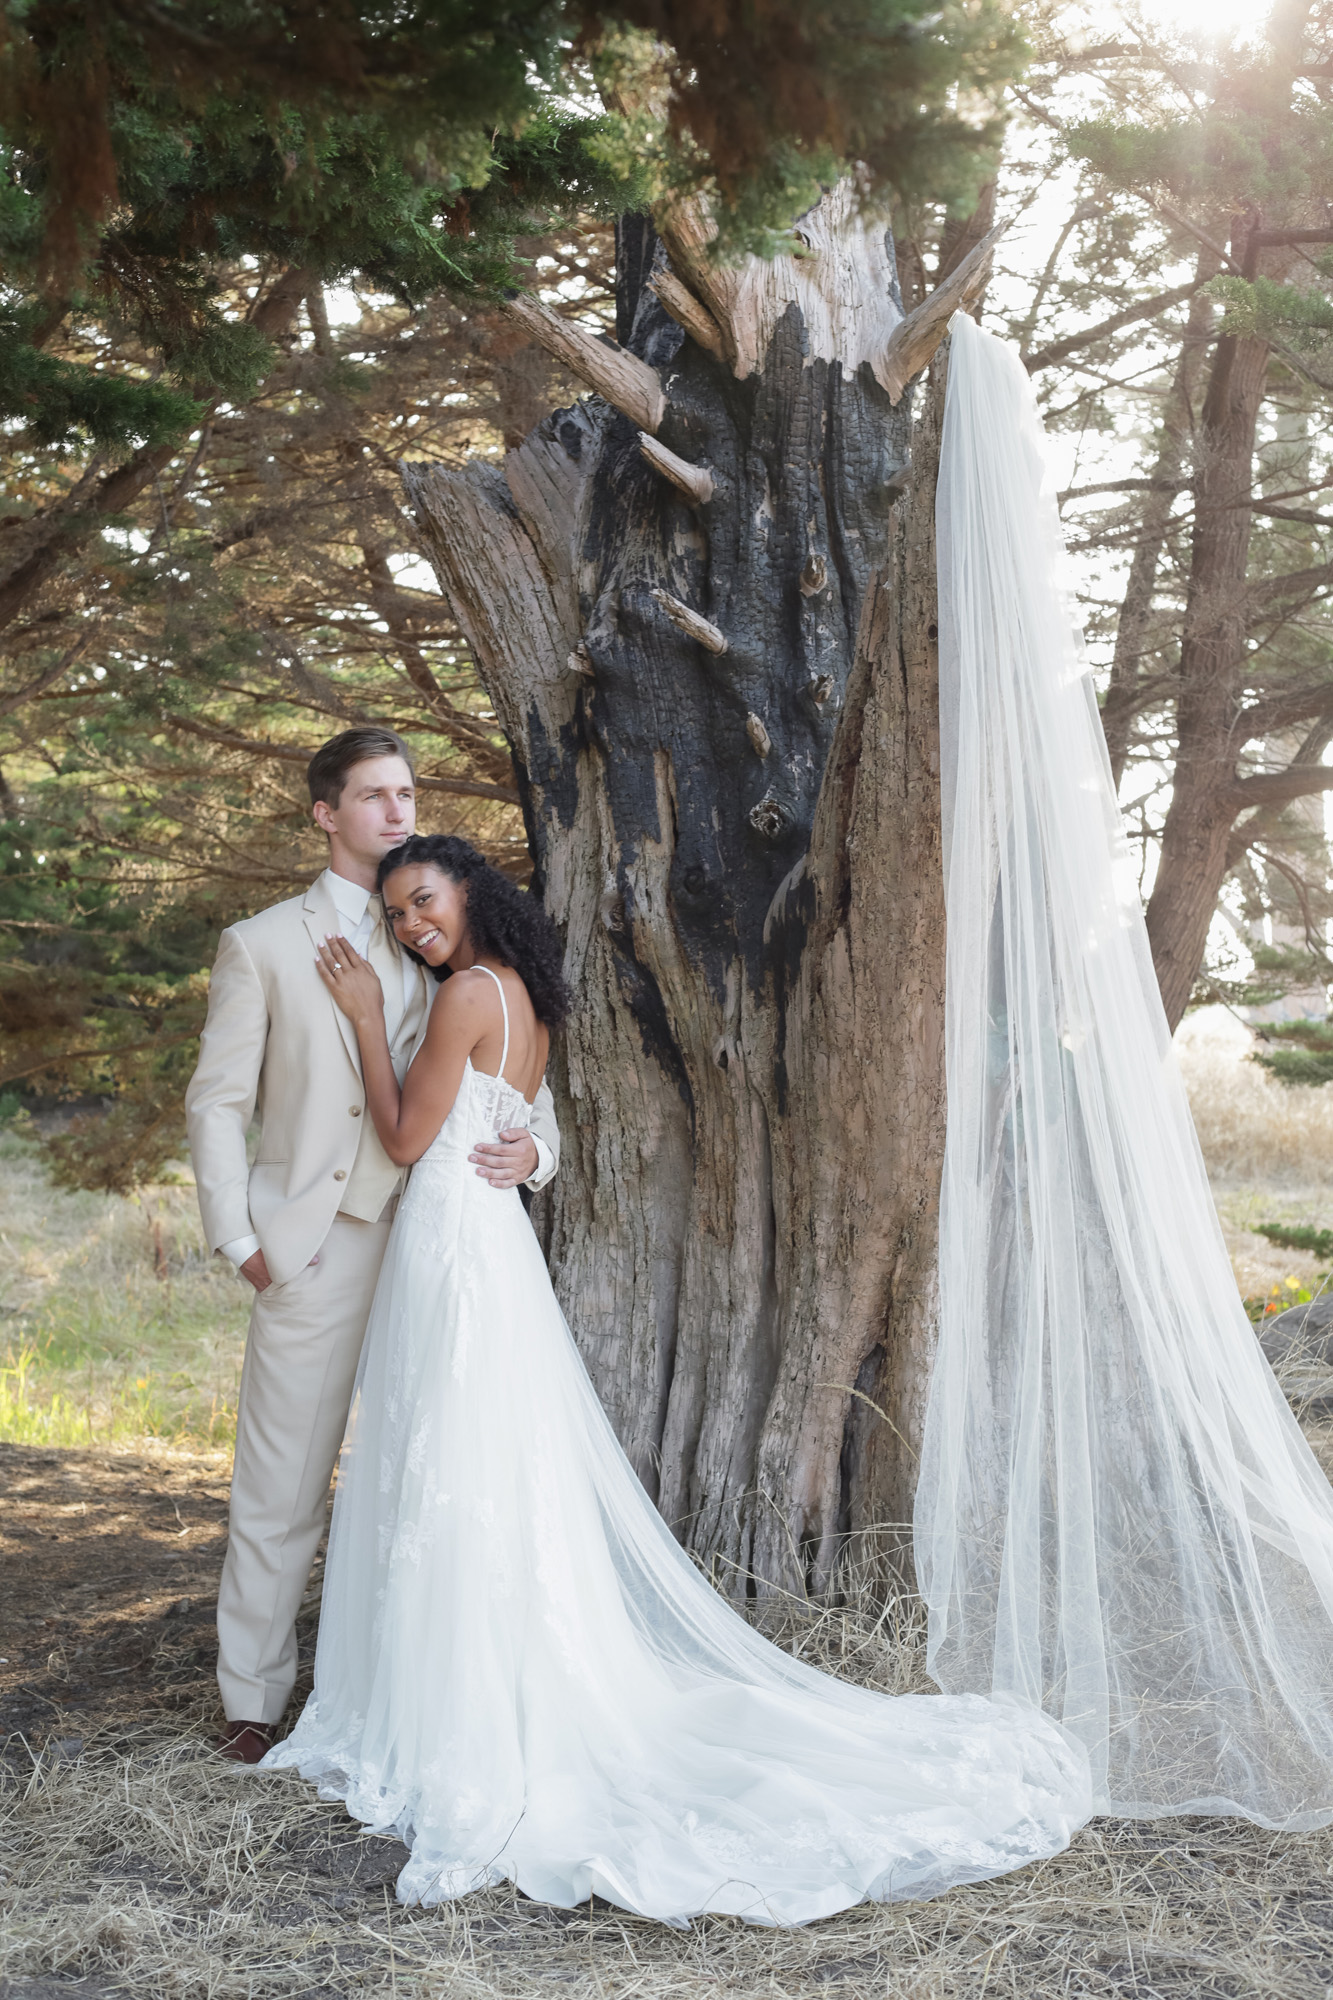 sanjose_wedding_photographer_bay_area_wedding_videographer_,msphotoandvideovol-10.jpg